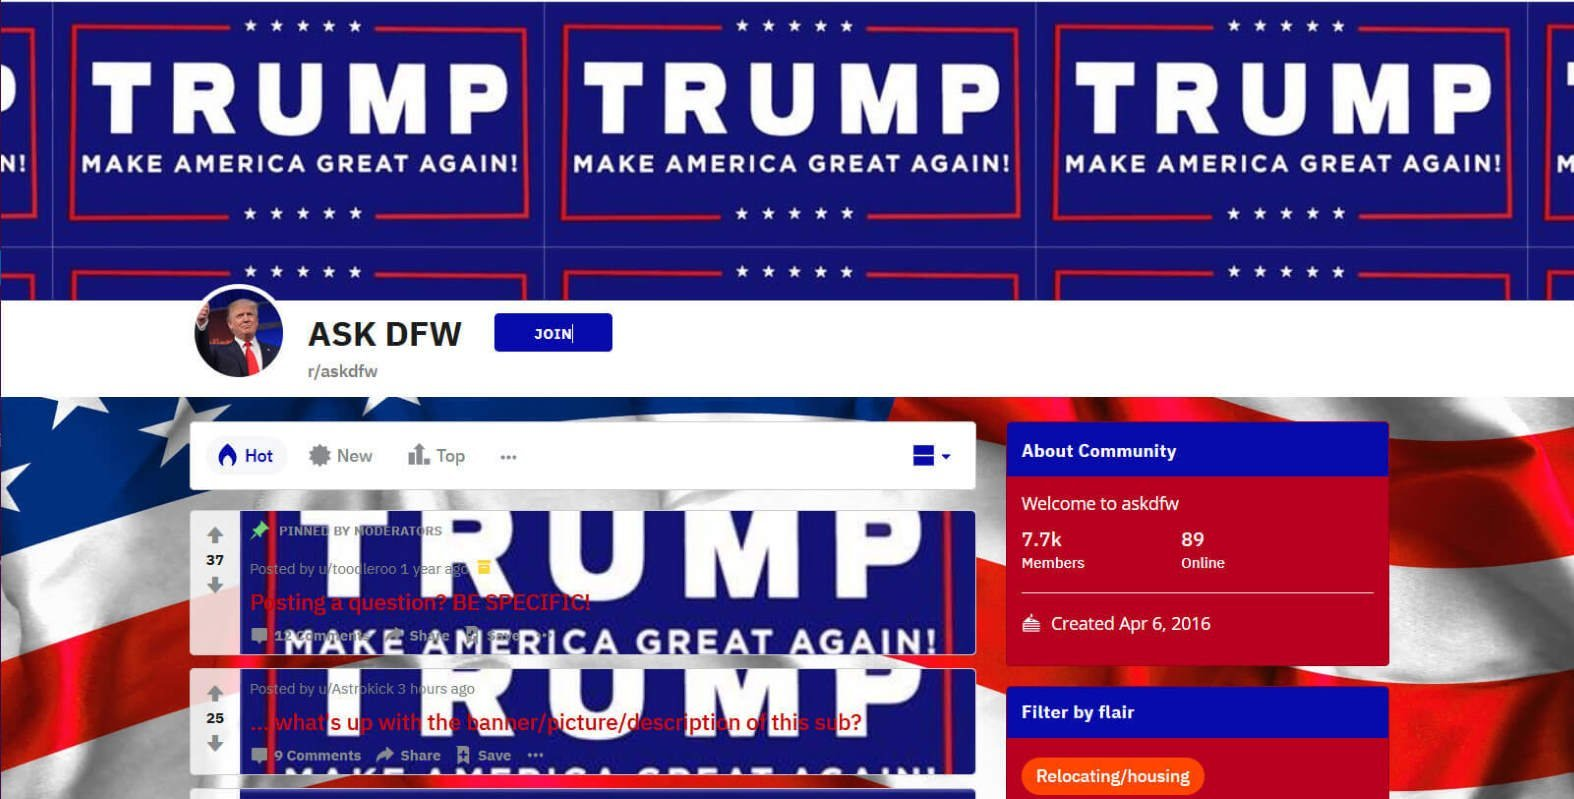 Reddit Hit By Coordinated Hack Promoting Trump's Reelection